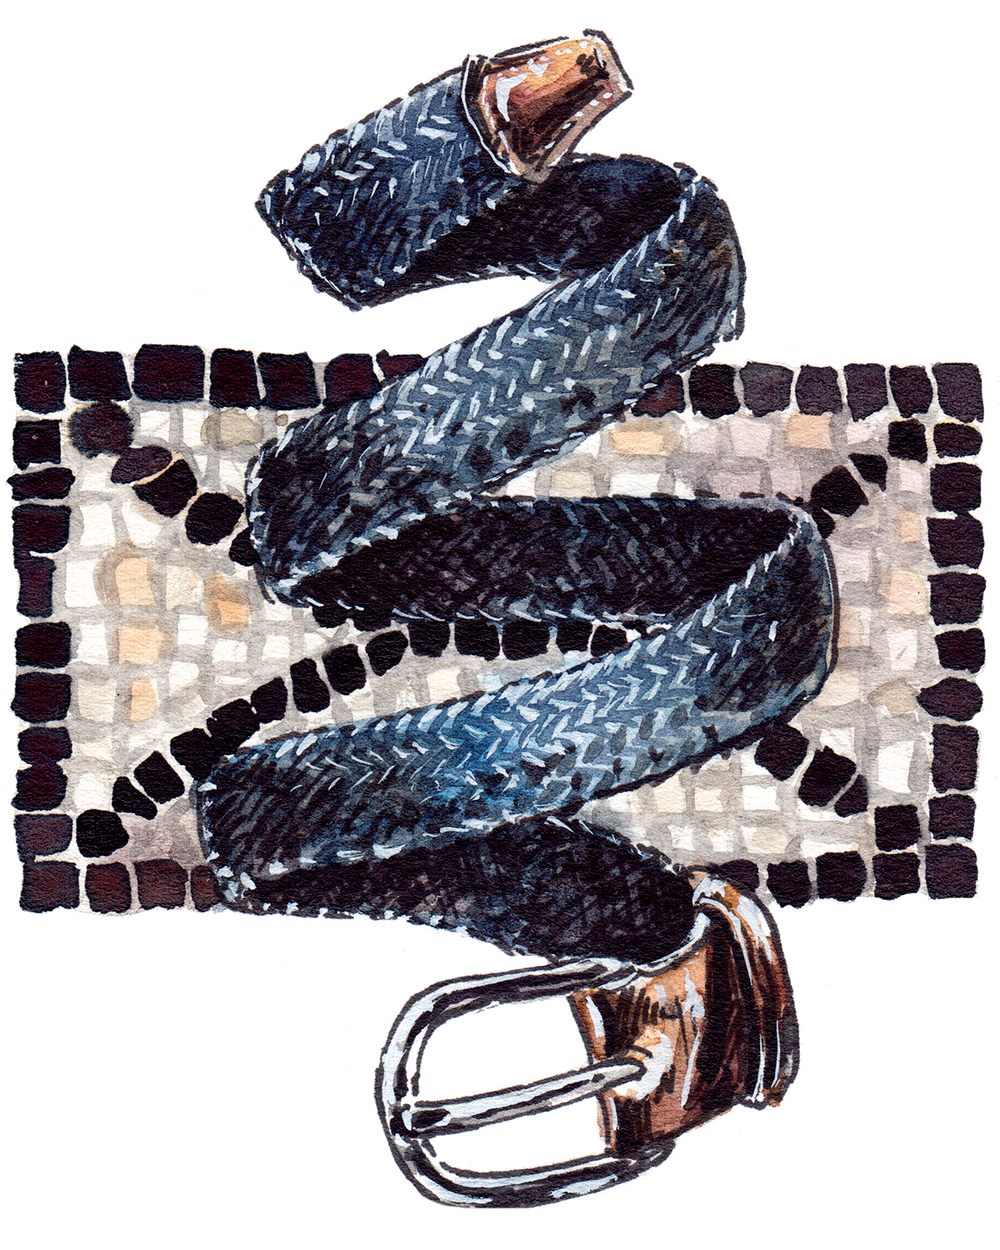 painting of Anderson's woven belt, with a mosaic background